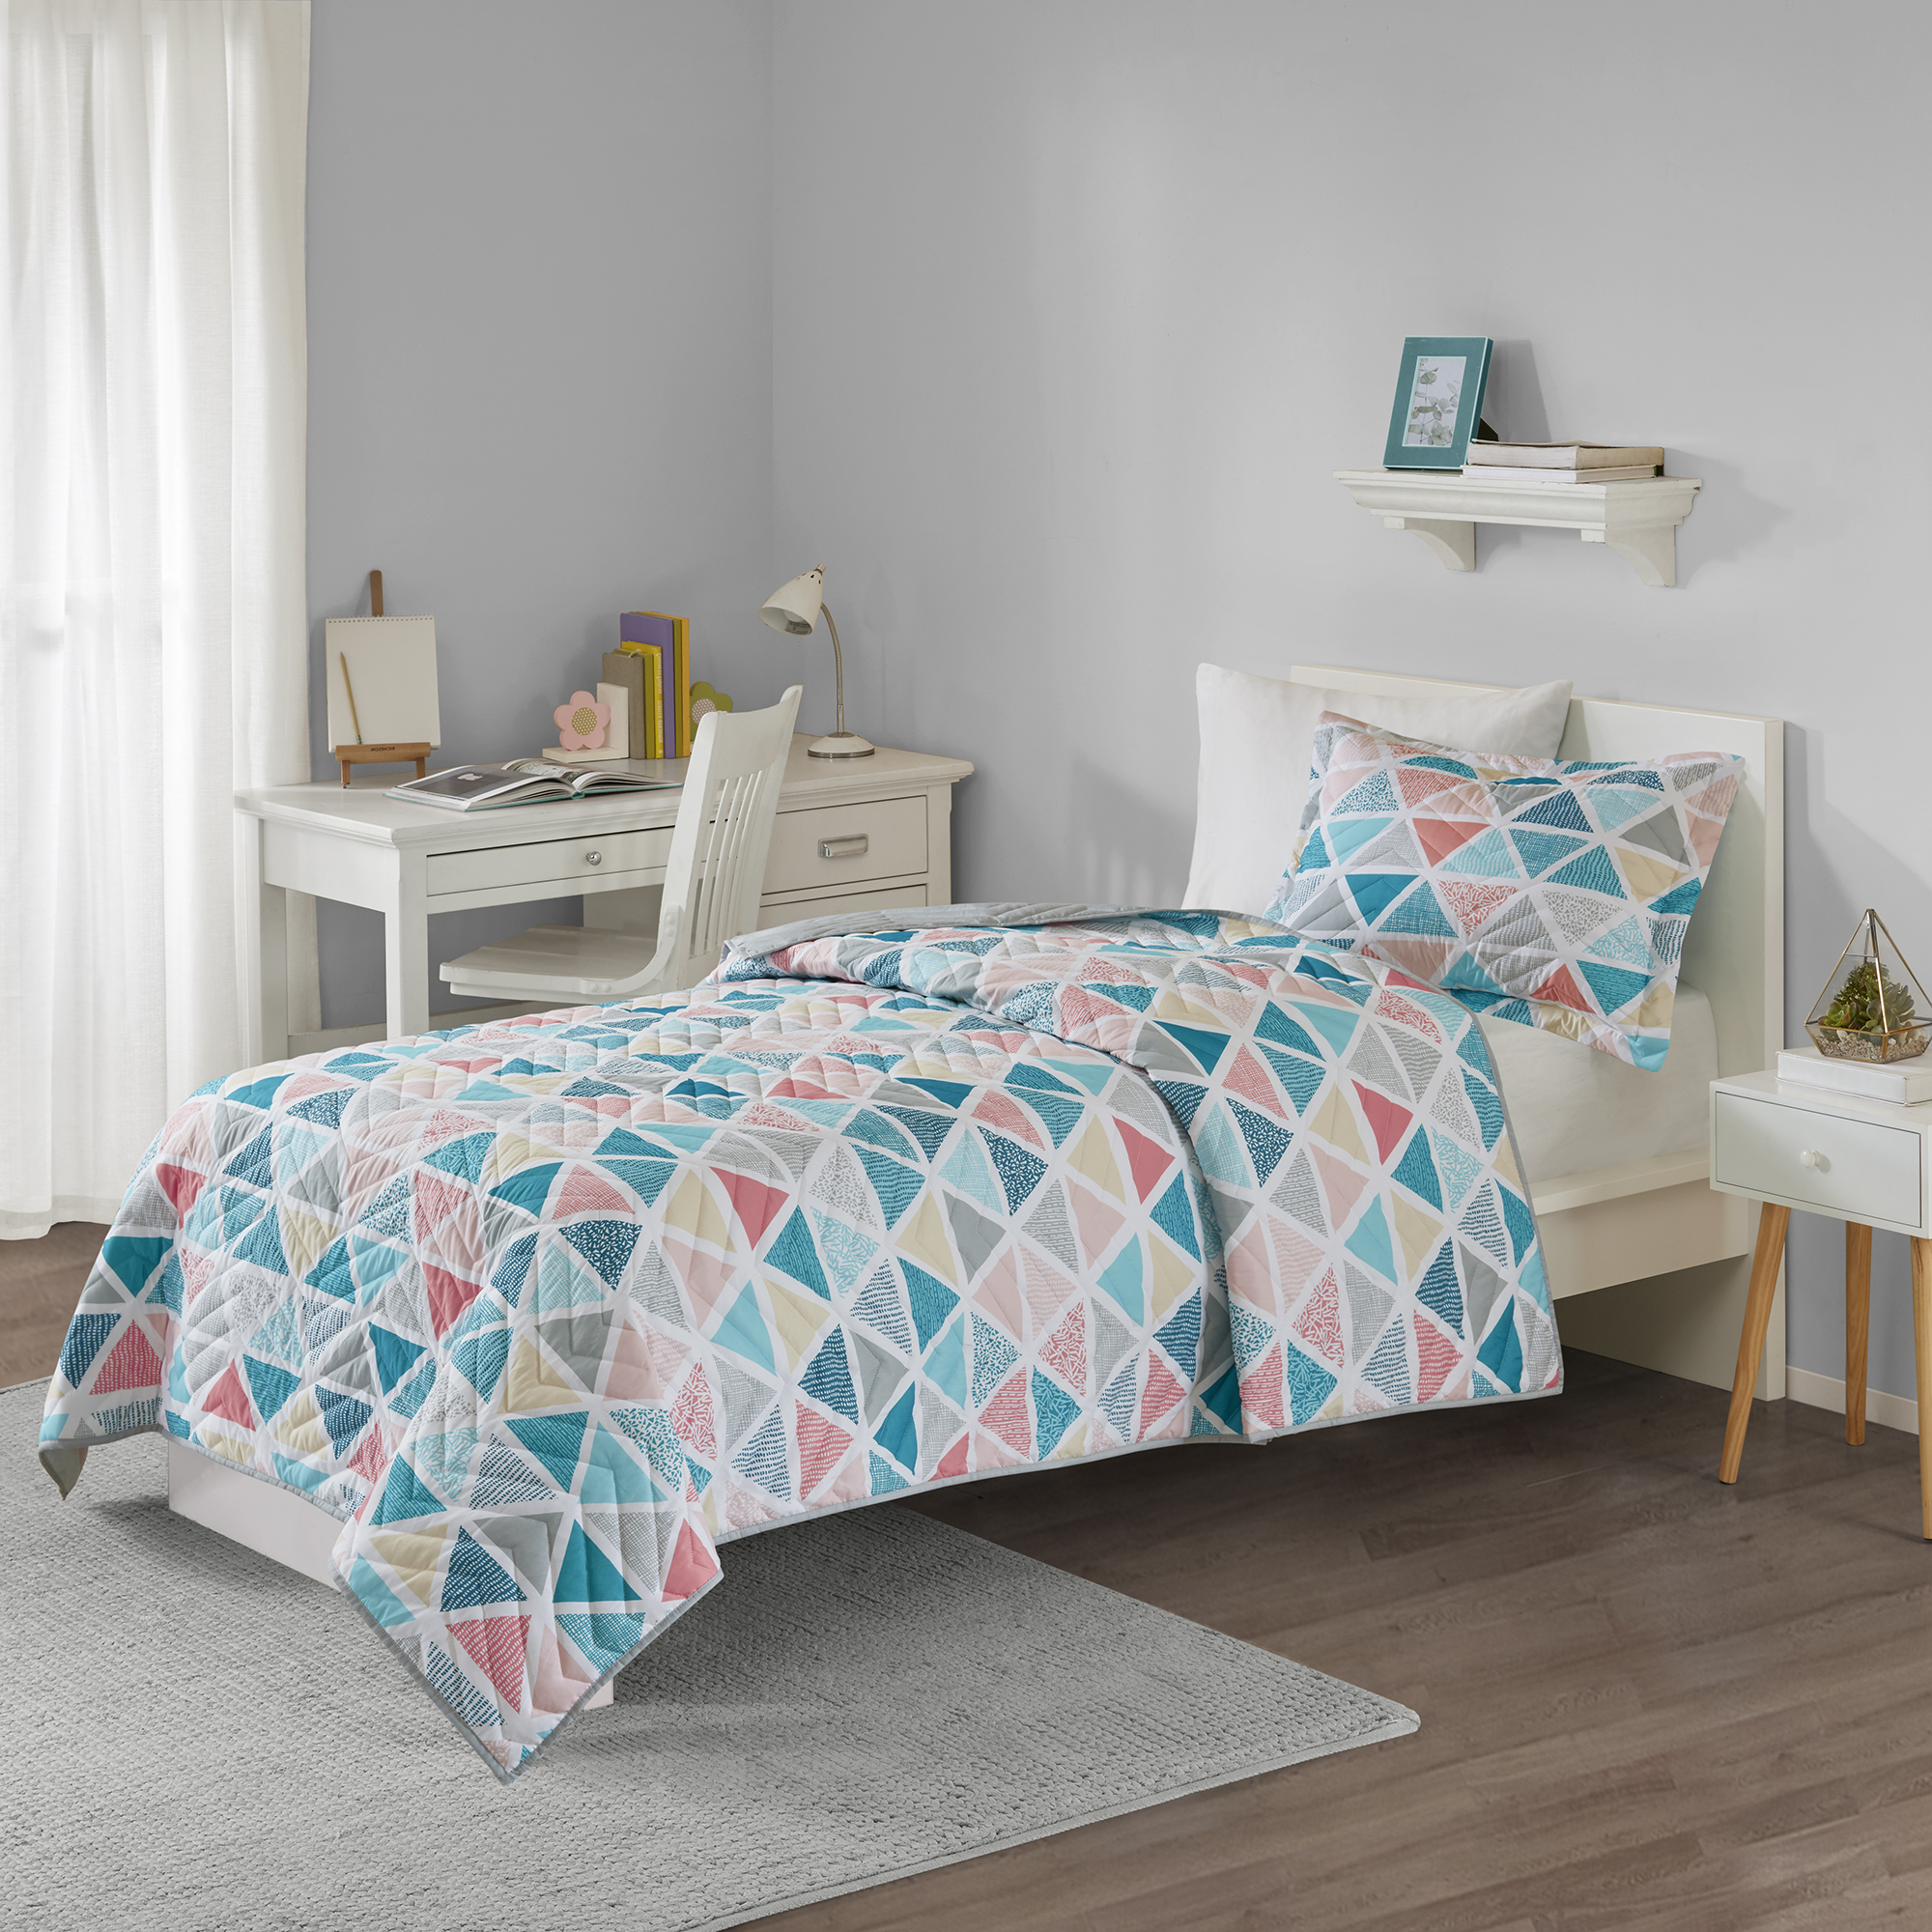 Your Zone Printed Geo Triangle Mini Quilt and Sham Set